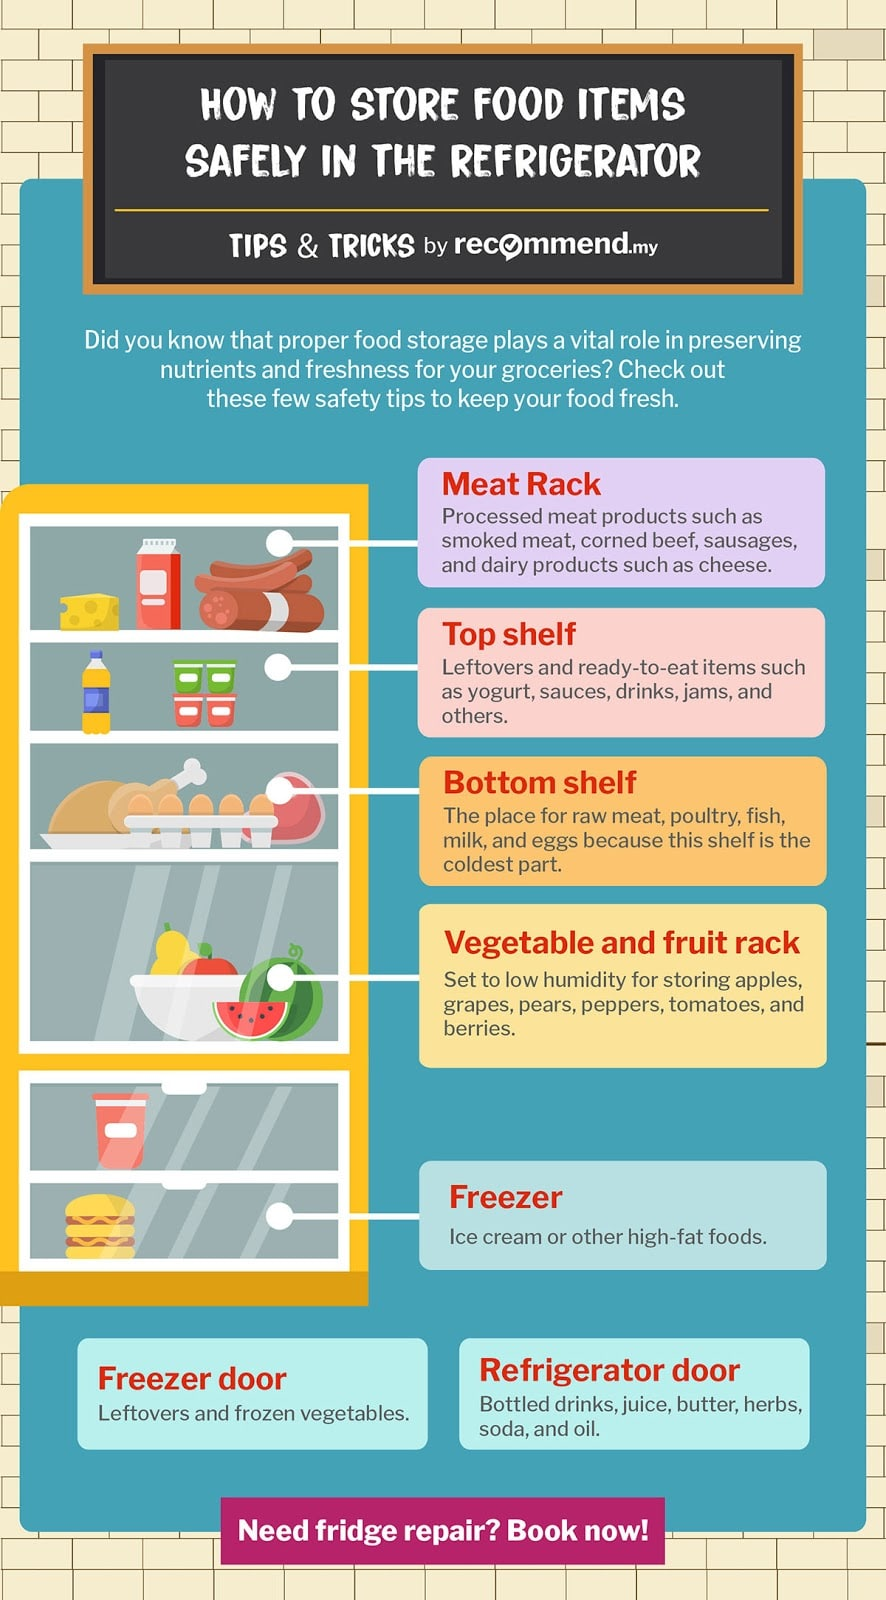 Storing your food items according to your refrigerator's temperature helps to minimize food contamination